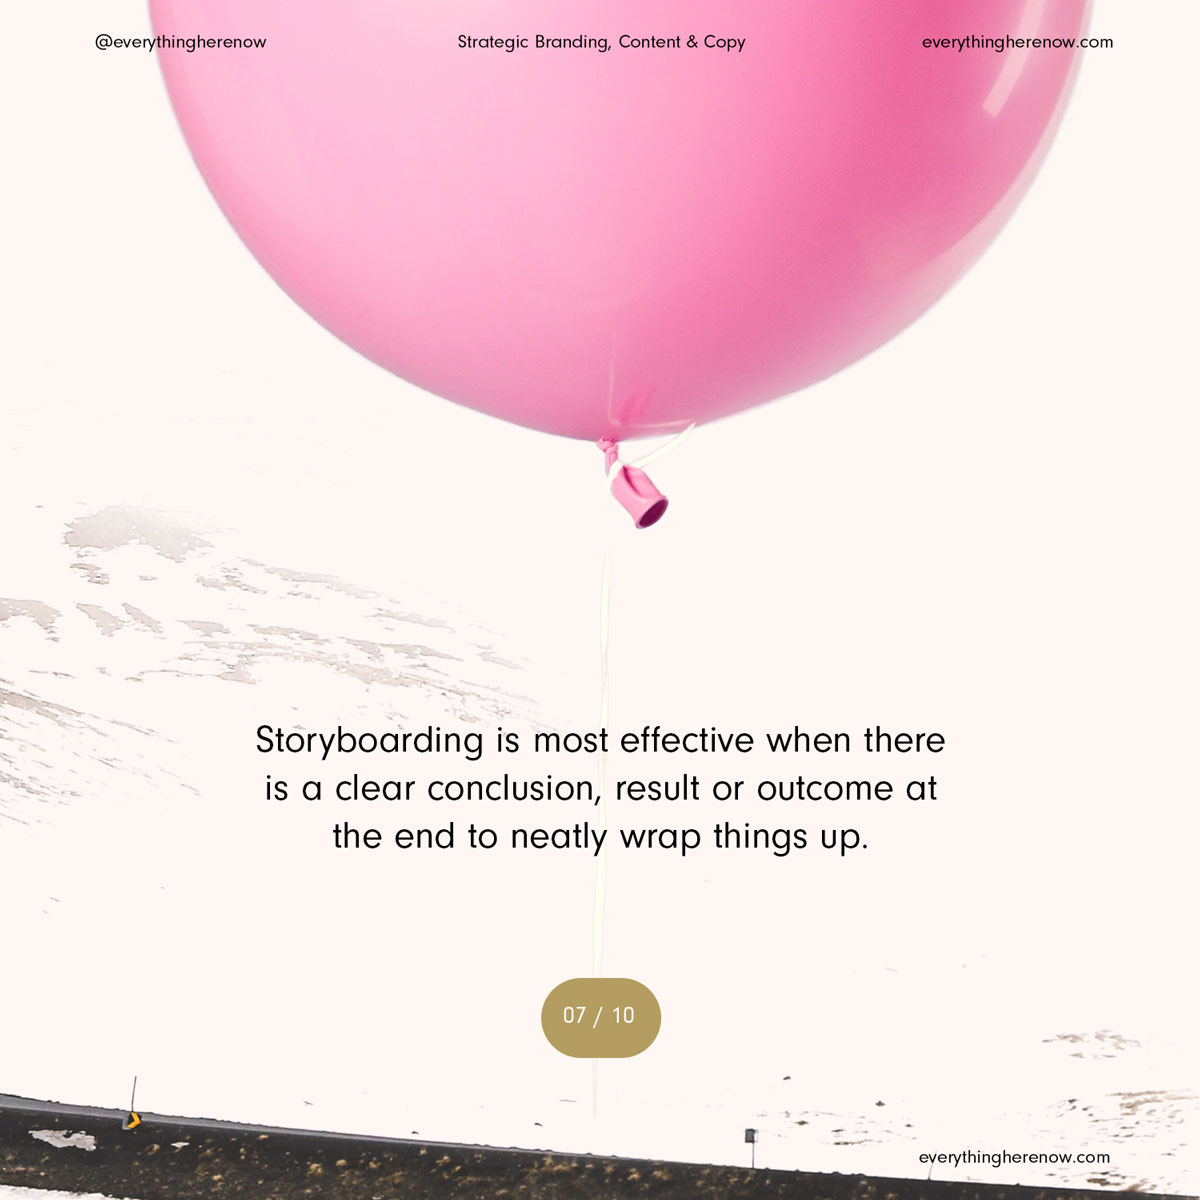 storyboarding-for-instagram-stories-what-it-is-and-when-to-use-it-by-everything-here-now-7